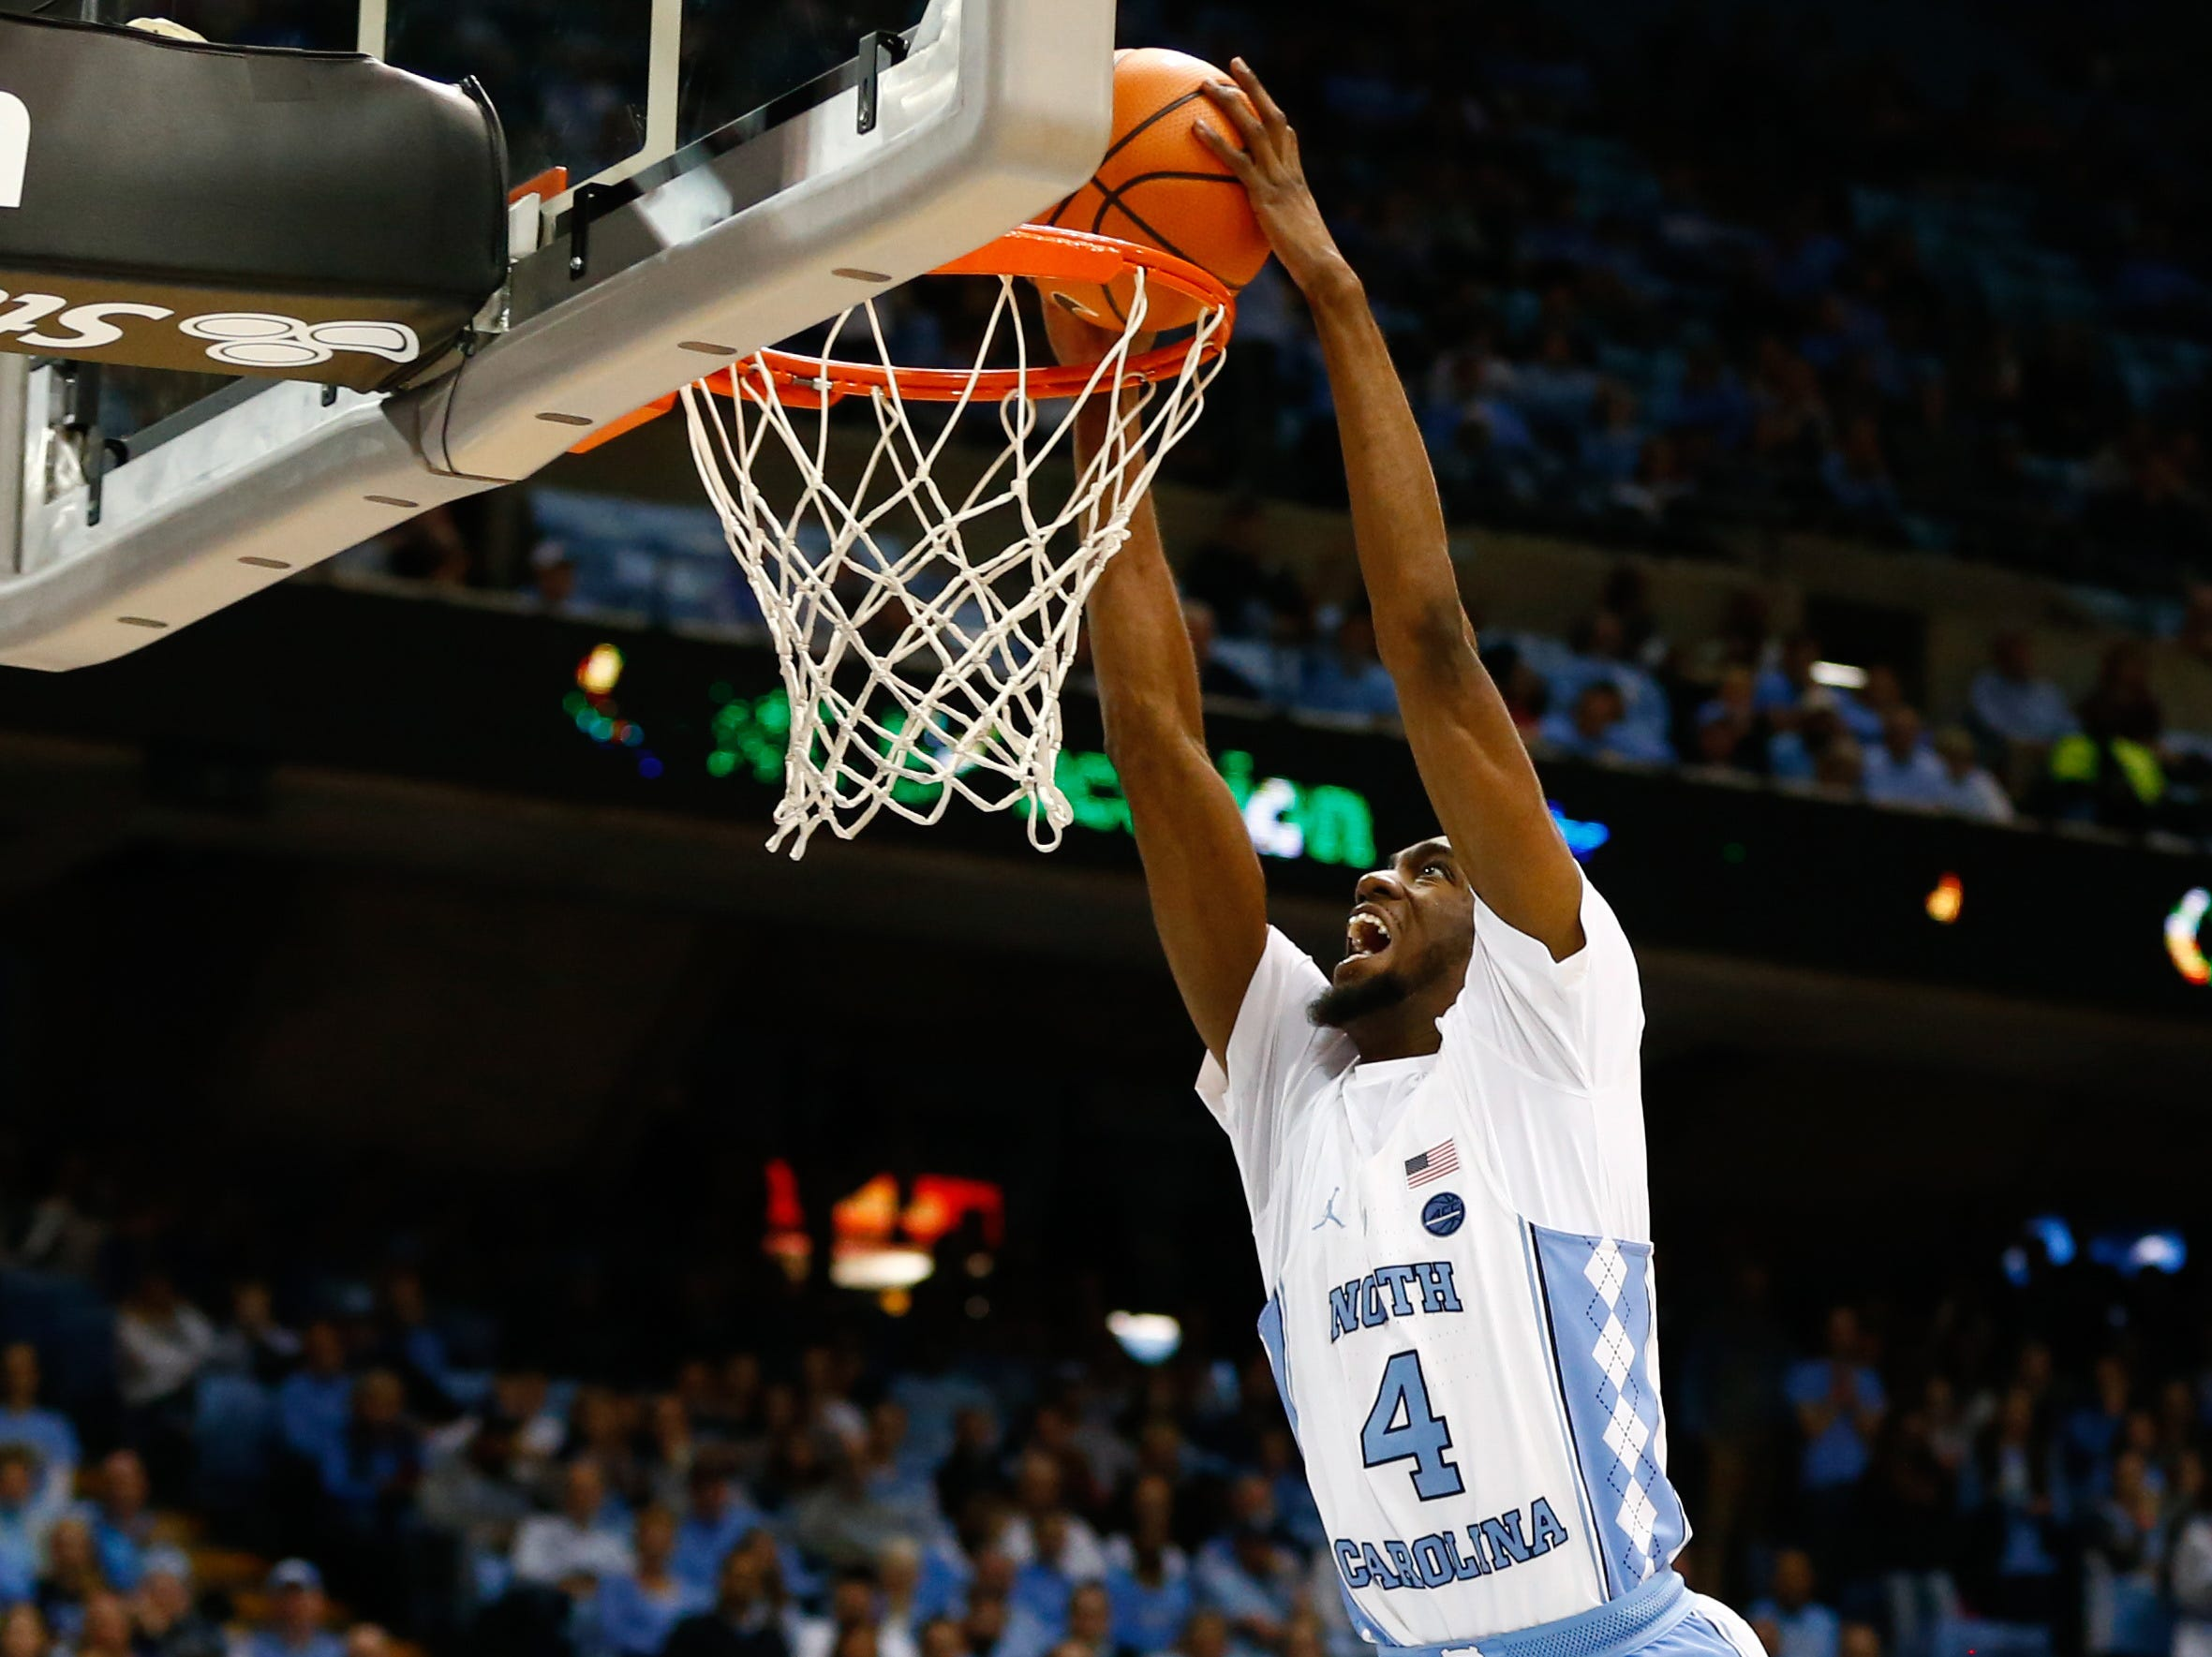 Dec 6, 2017; Chapel Hill, NC, USA; North Carolina Tar Heels guard Brandon Robinson (4) dunks the ball in the second half against the Western Carolina Catamounts at Dean E. Smith Center. Mandatory Credit: Jeremy Brevard-USA TODAY Sports